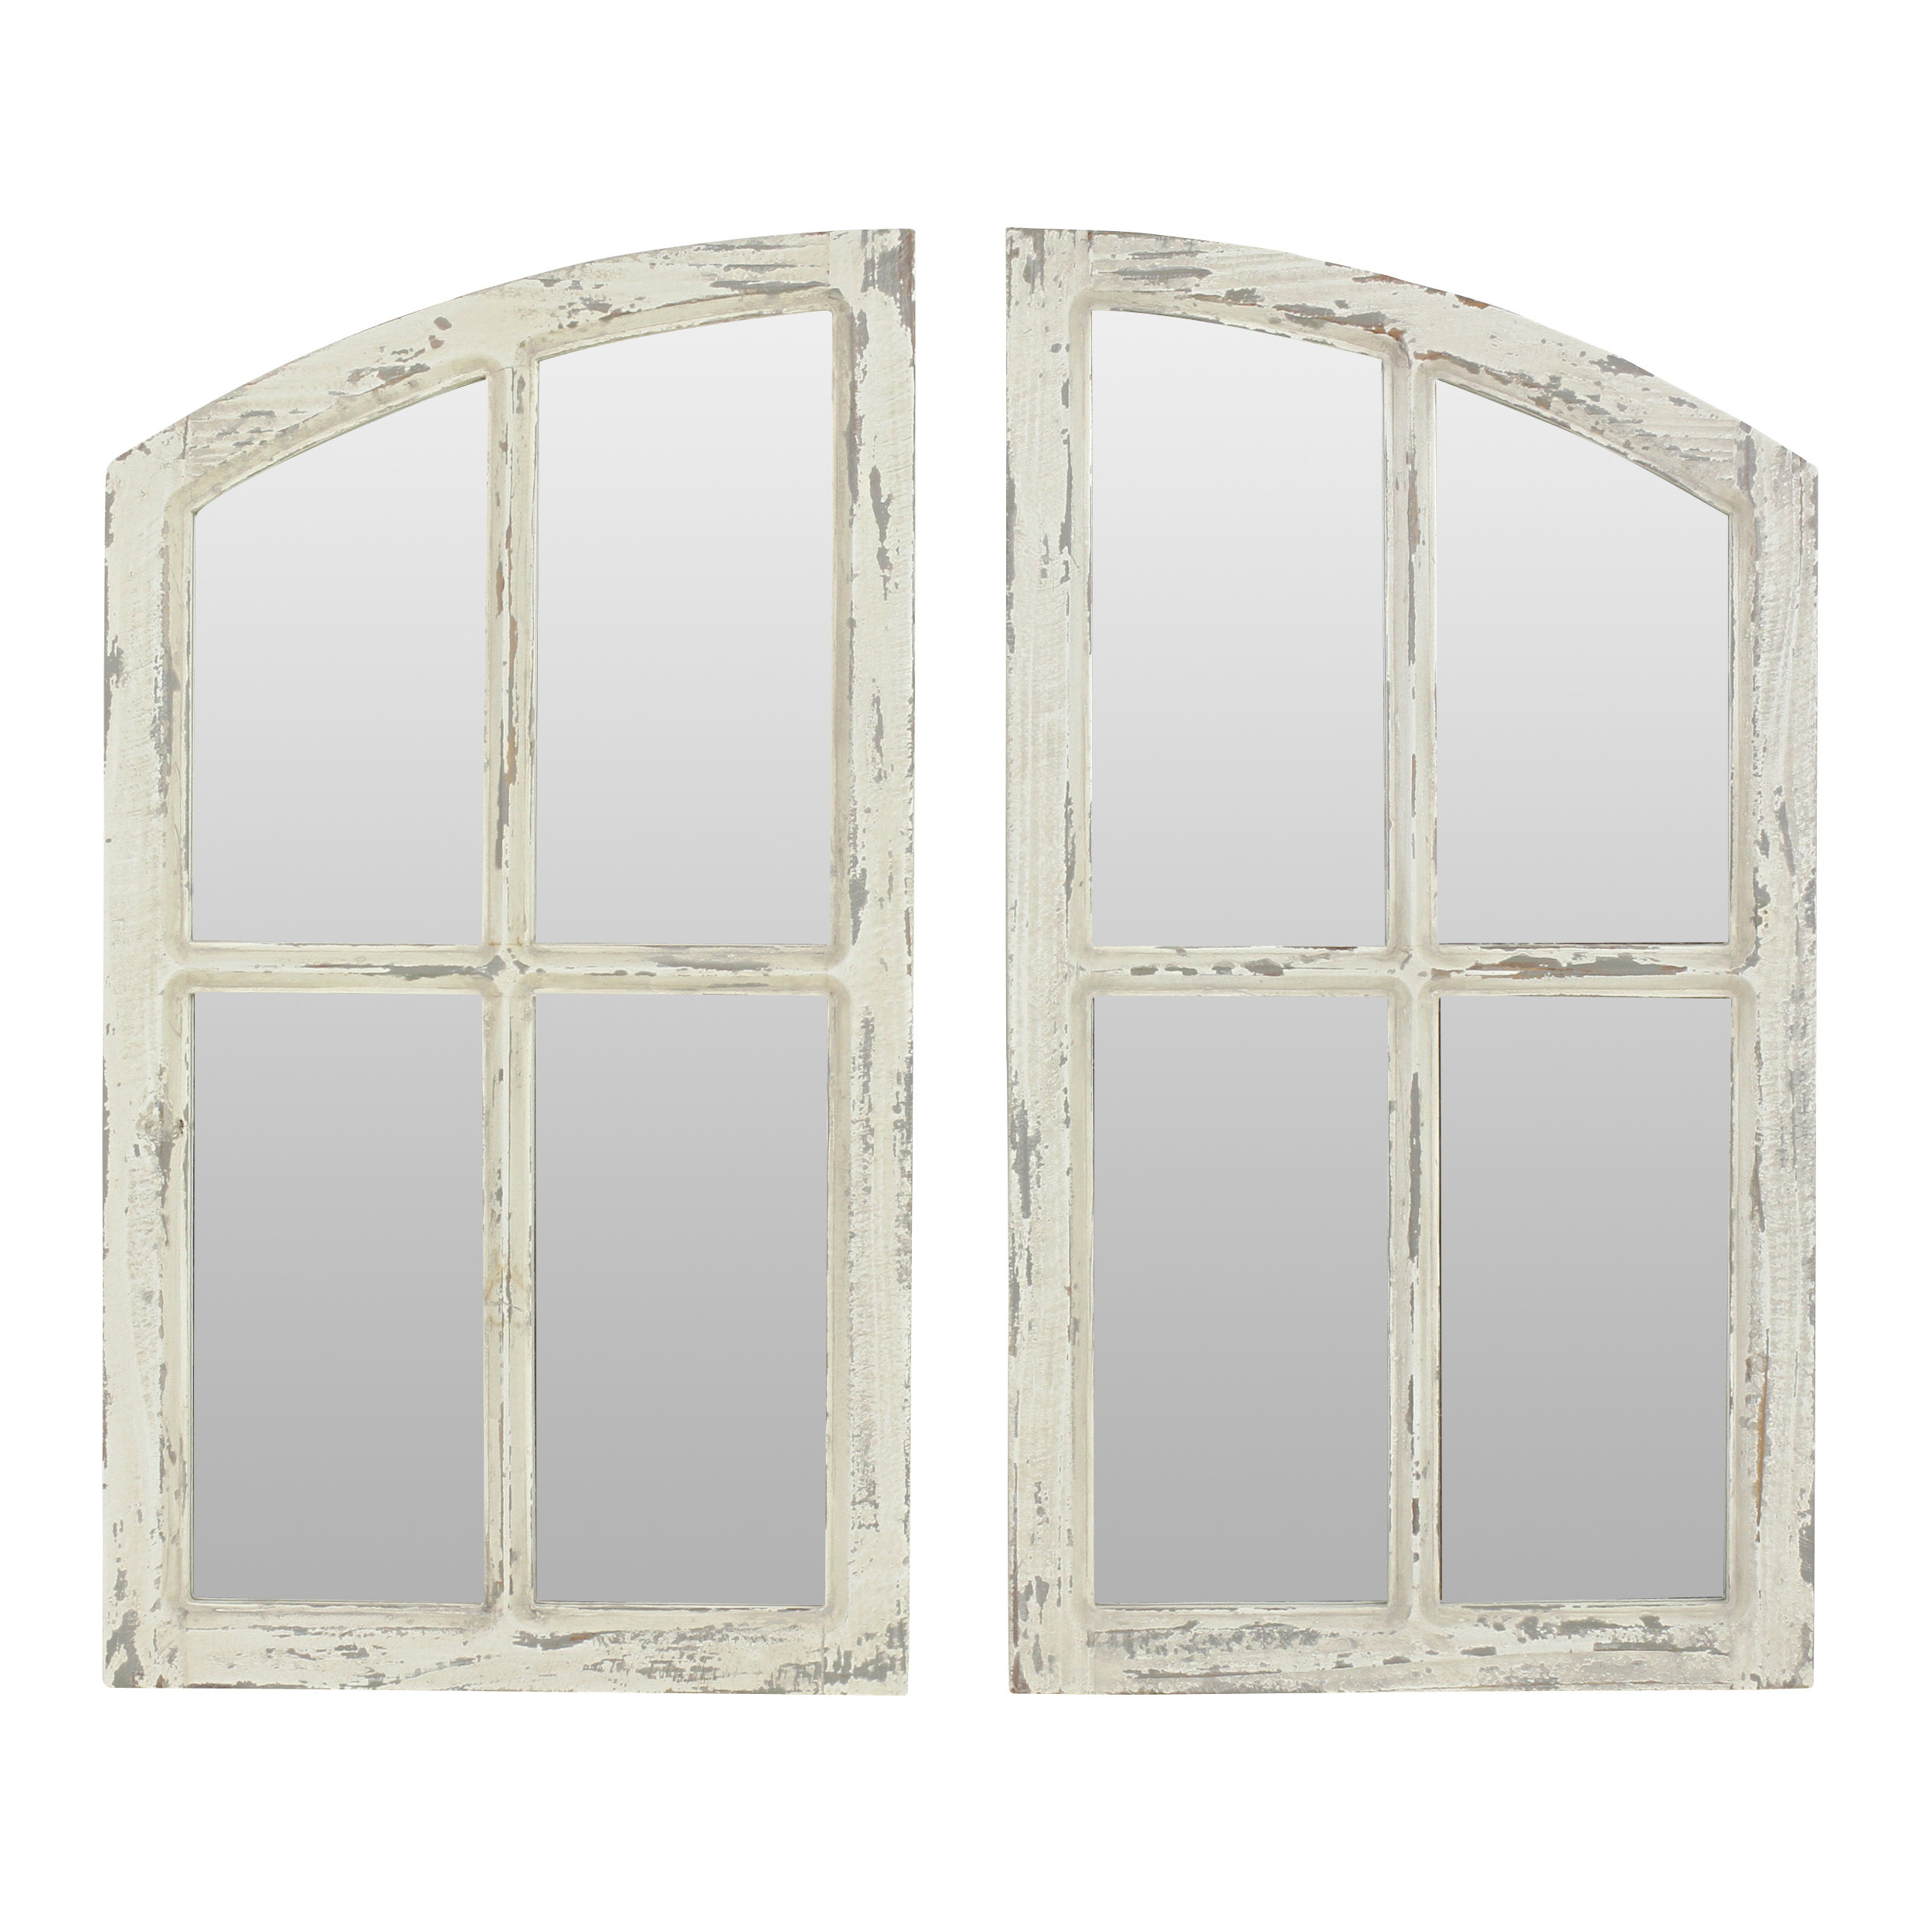 Rectangle Antique Galvanized Metal Accent Mirrors With Regard To Famous 2 Piece Kissena Window Pane Accent Mirror Set (View 15 of 20)